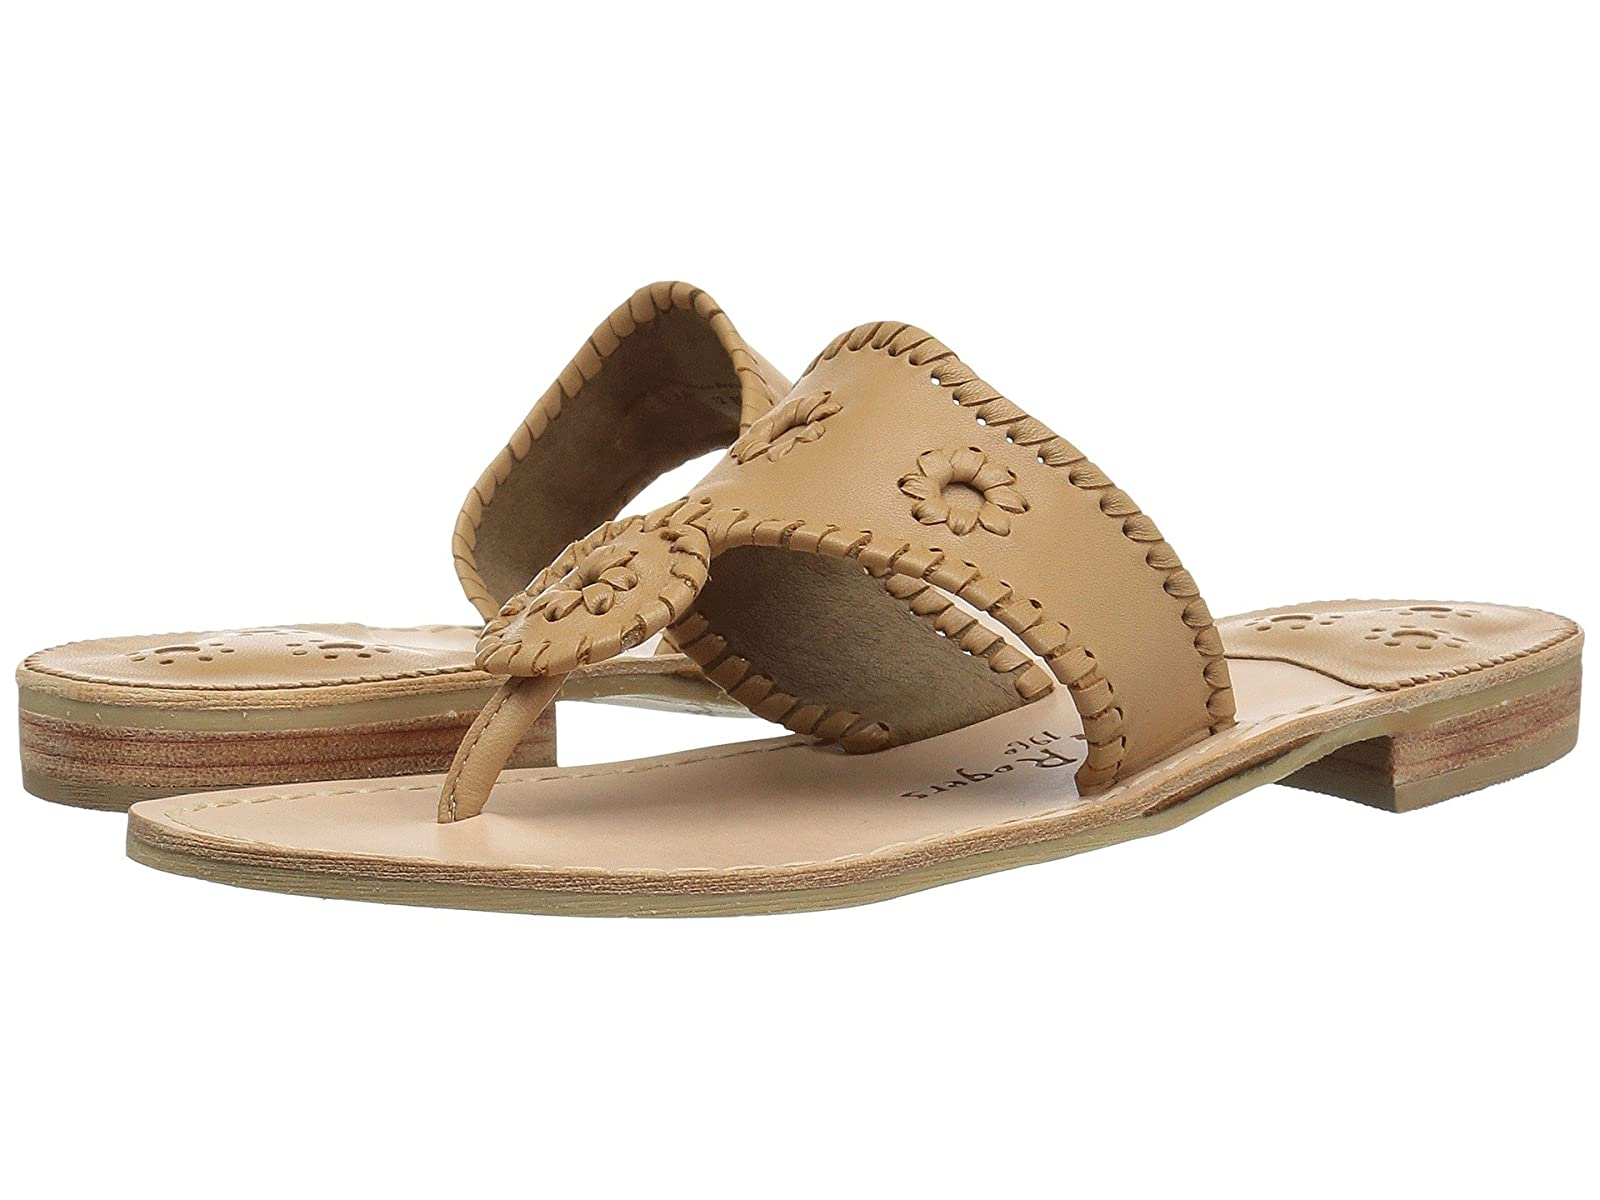 Jack Rogers LisaCheap and distinctive eye-catching shoes